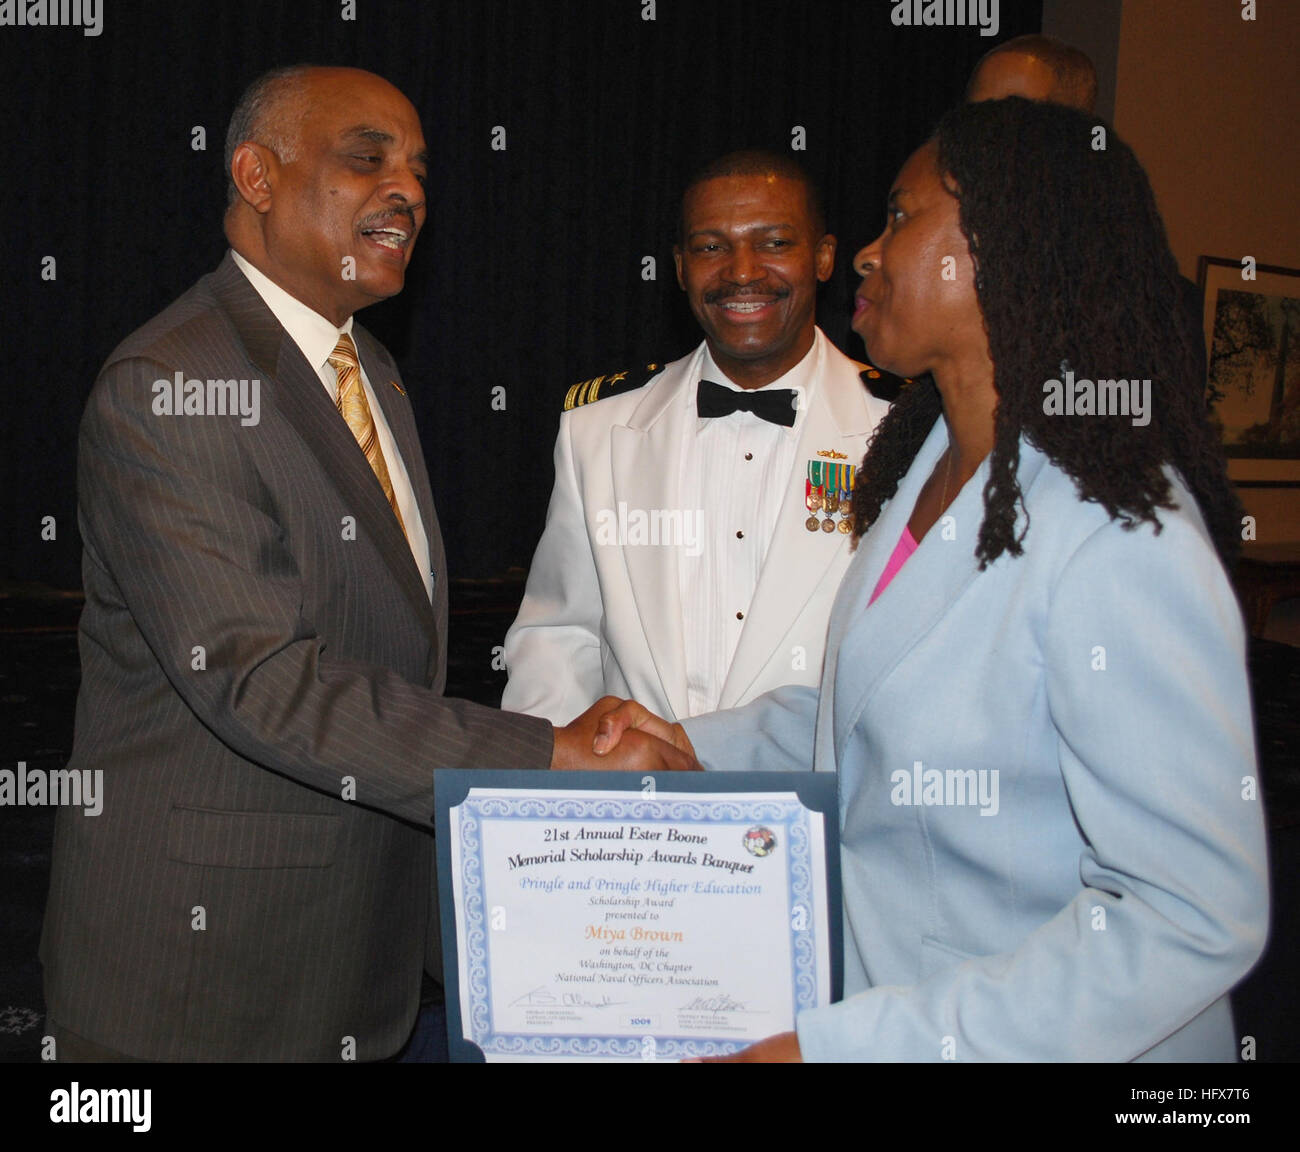 090417-N-9268E-095 WASHINGTON (April 17, 2009) Acting Secretary of the Navy B.J. Penn  congratulates a high school - Stock Image